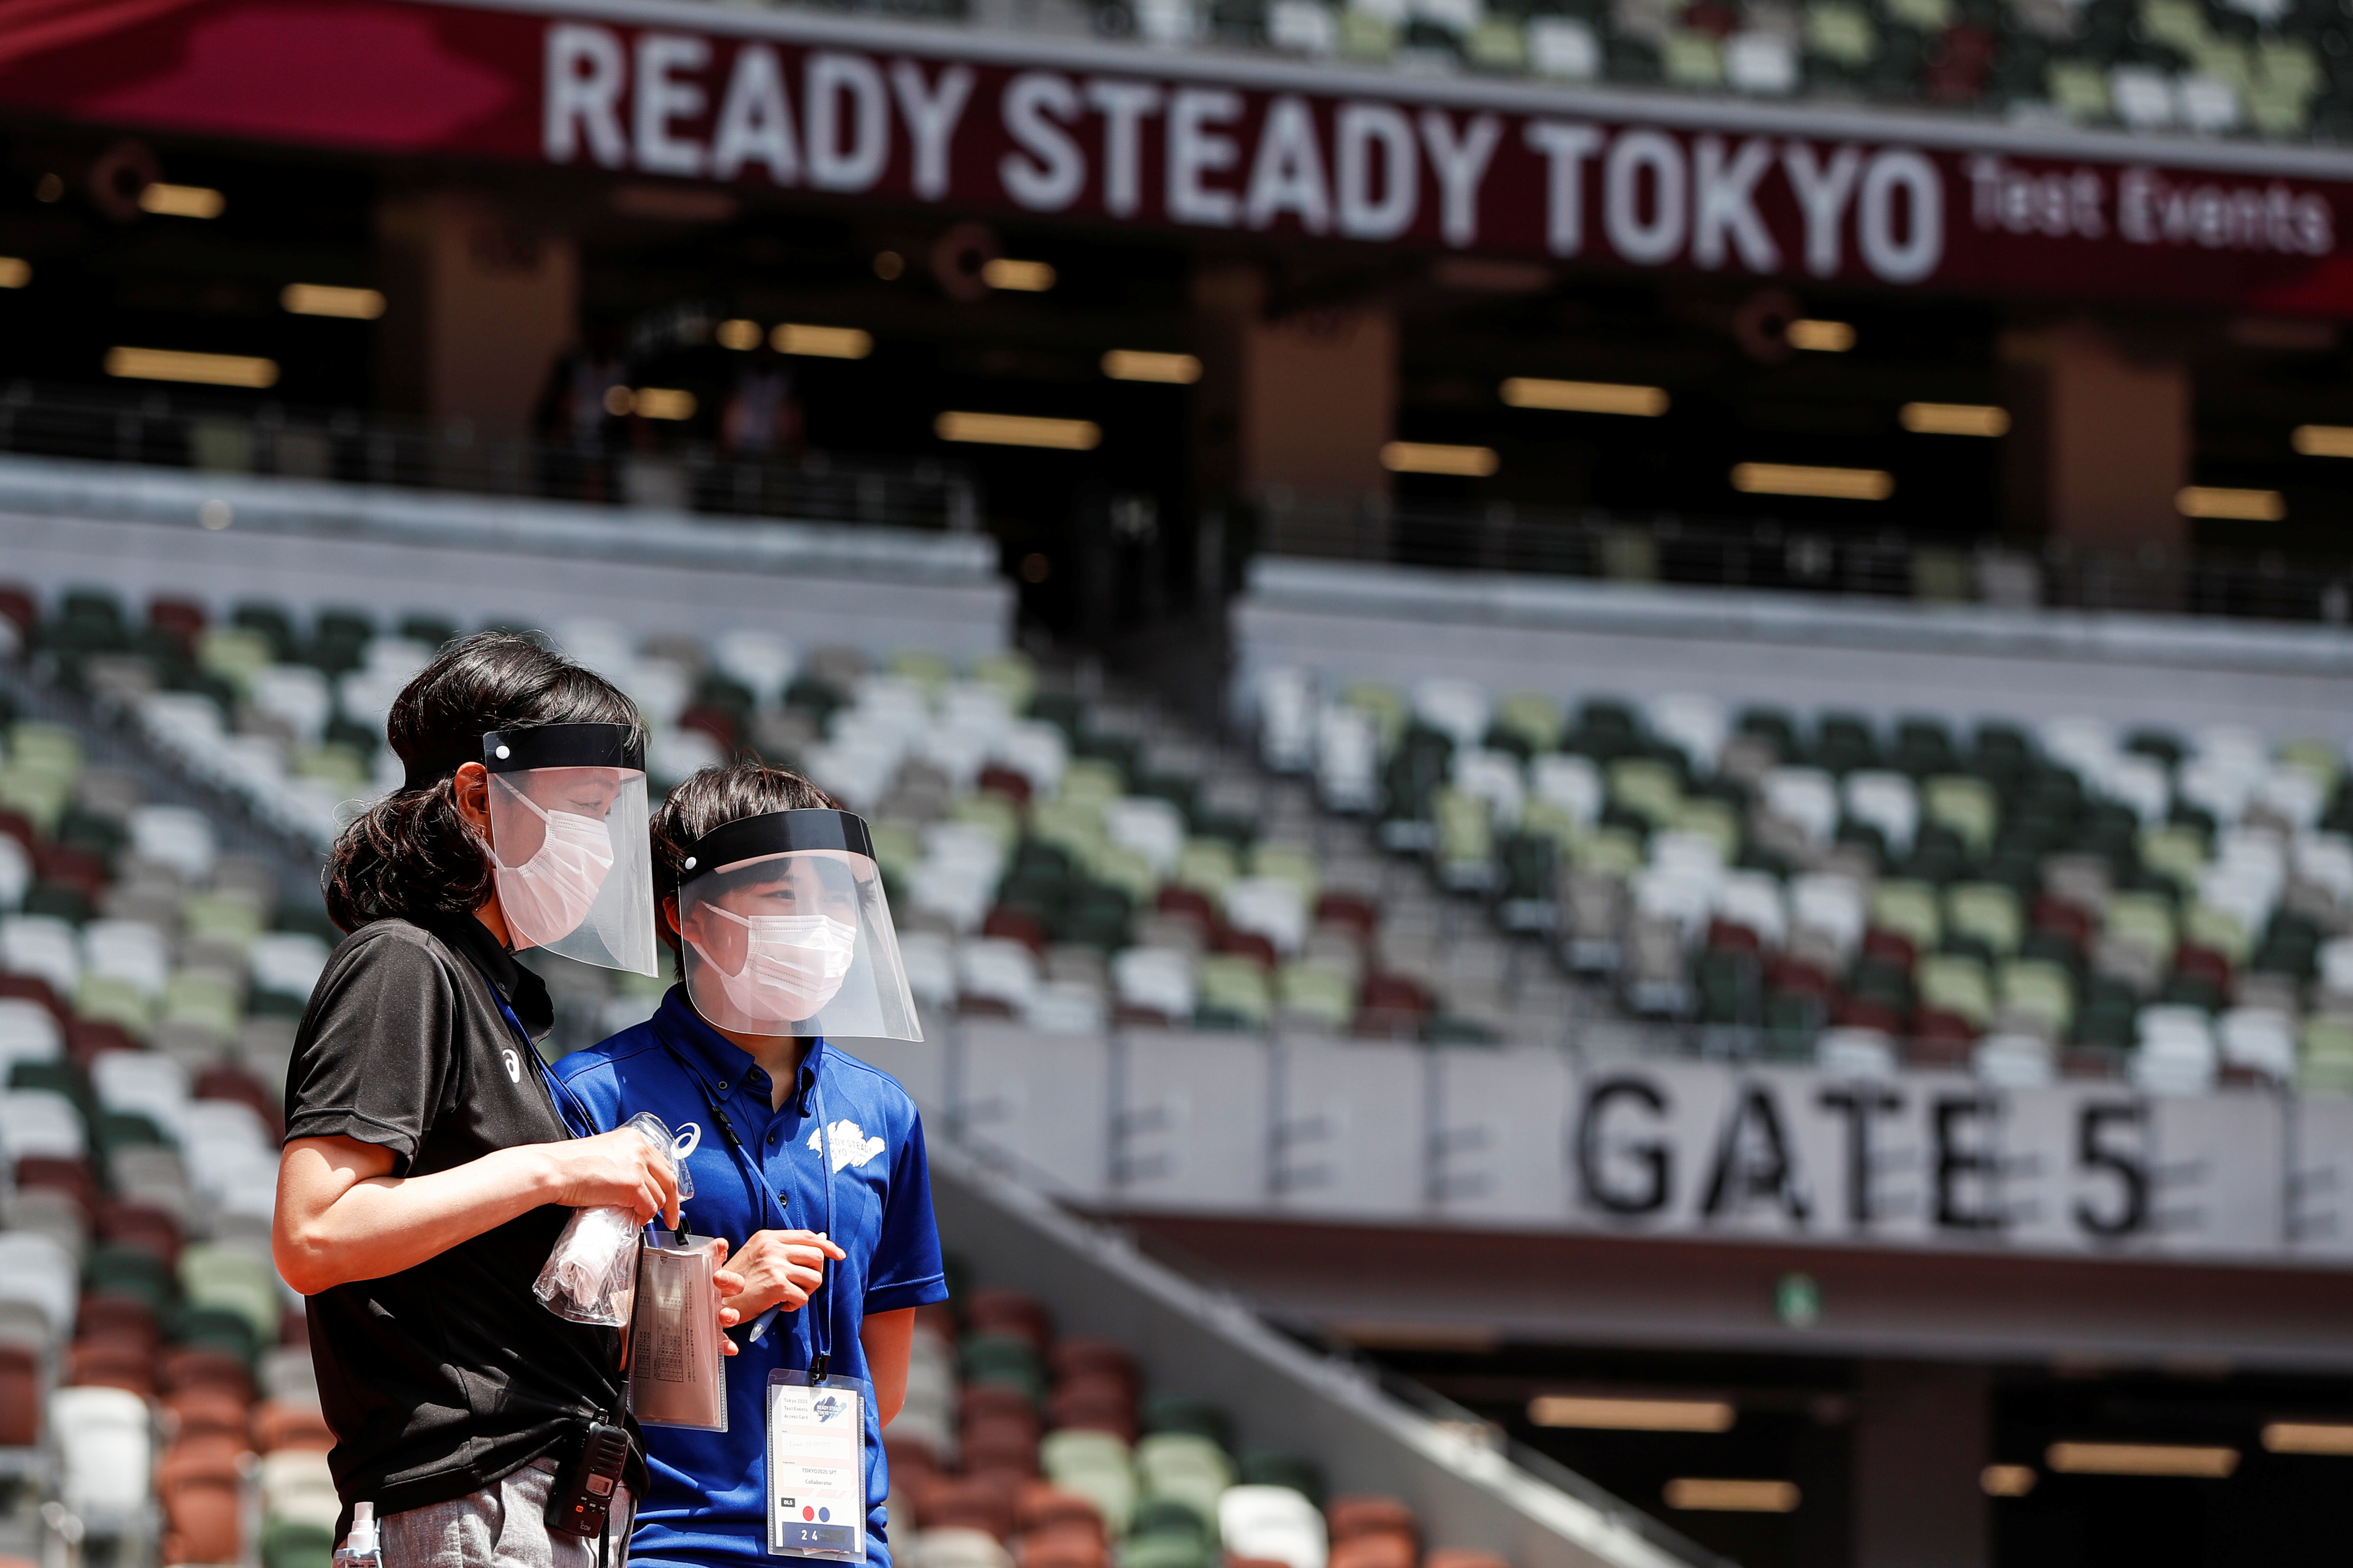 Olympics - Tokyo 2020 Olympic Games Test Event - Athletics - Olympic Stadium, Tokyo, Japan - May 9, 2021.     Officials wear face masks and shields as a preventive measure against the coronavirus disease (COVID-19) during the morning session of the Athletics test event. REUTERS/Issei Kato